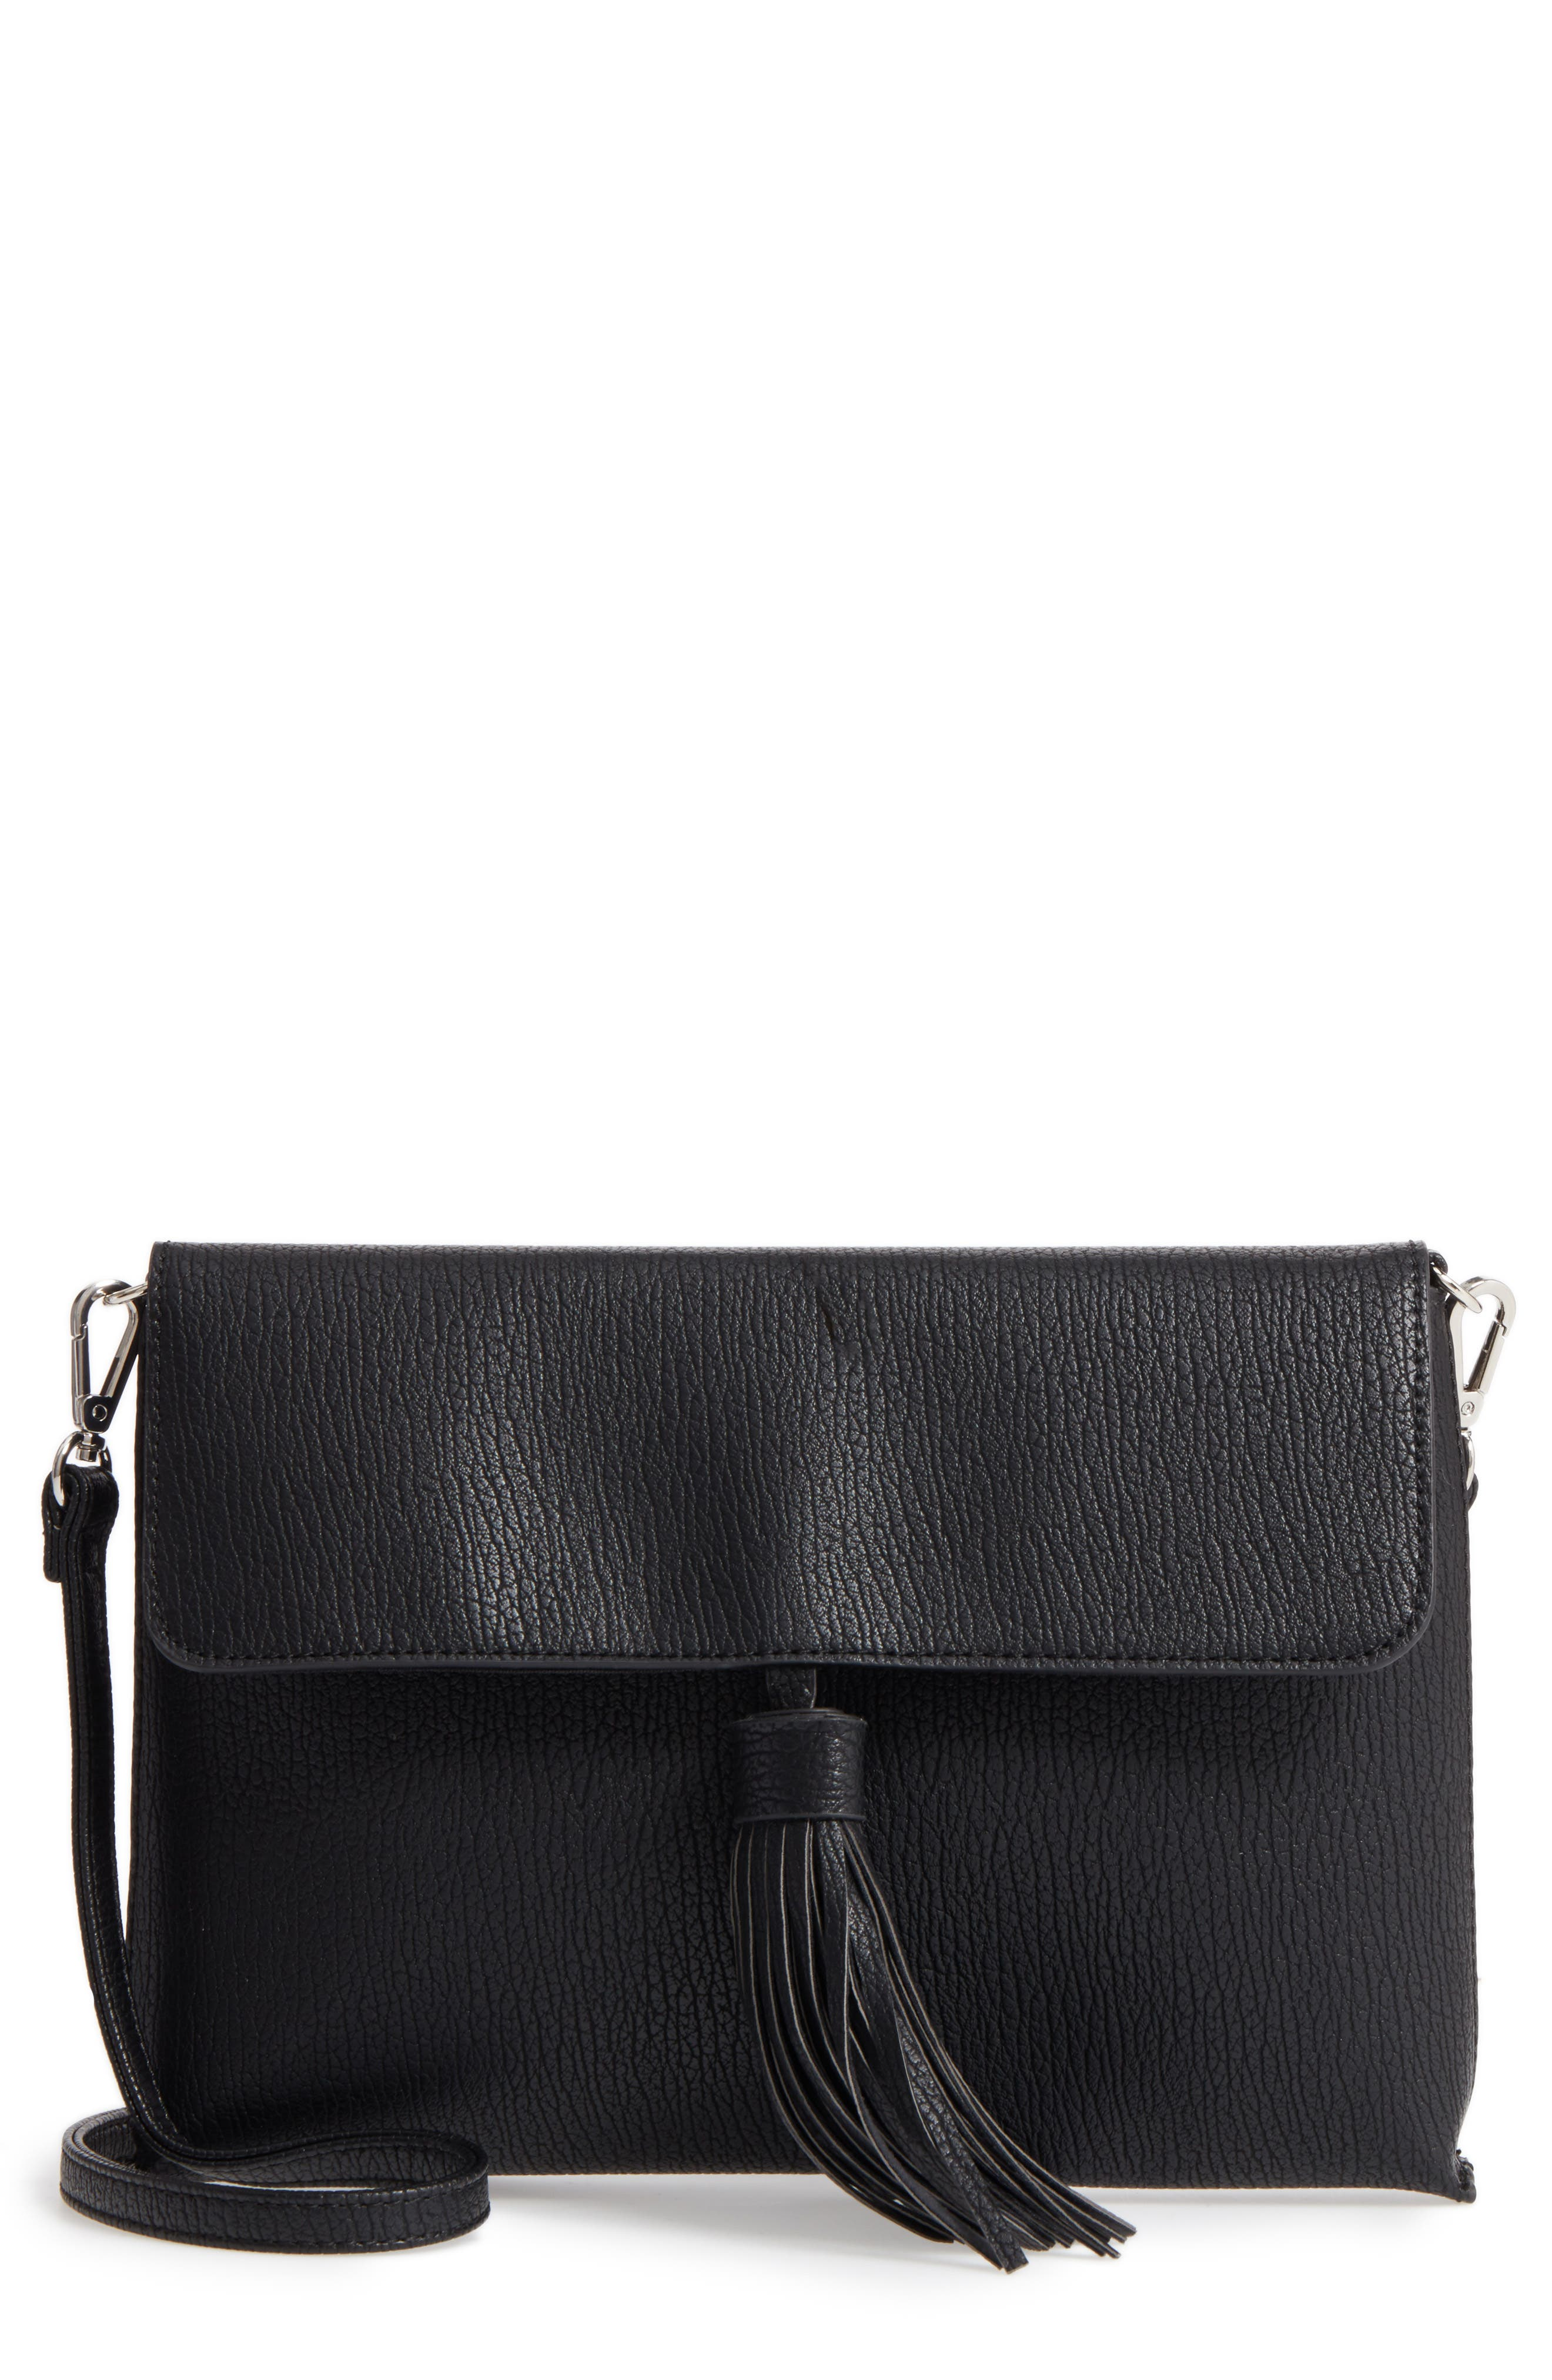 Sole Society Divya Faux Leather Convertible Clutch